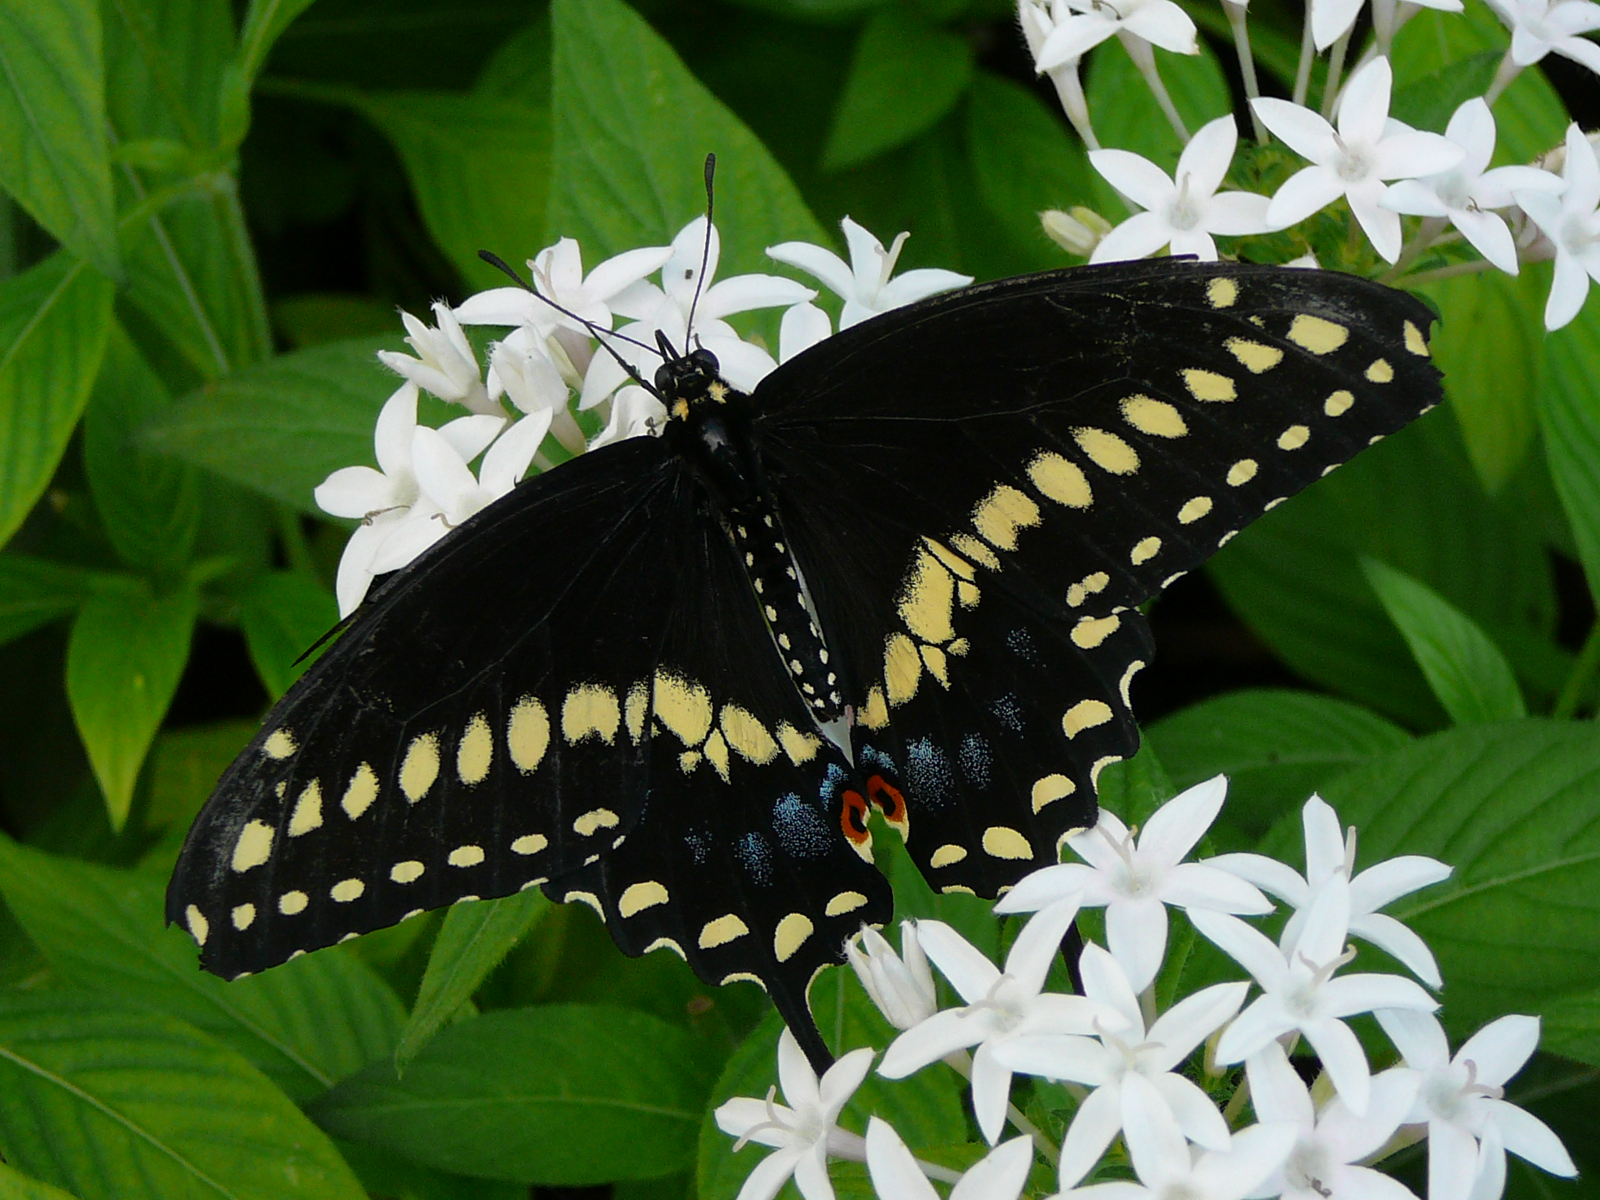 American 20black 20swallowtail 1 20photo 20by 20leslie 20thompson